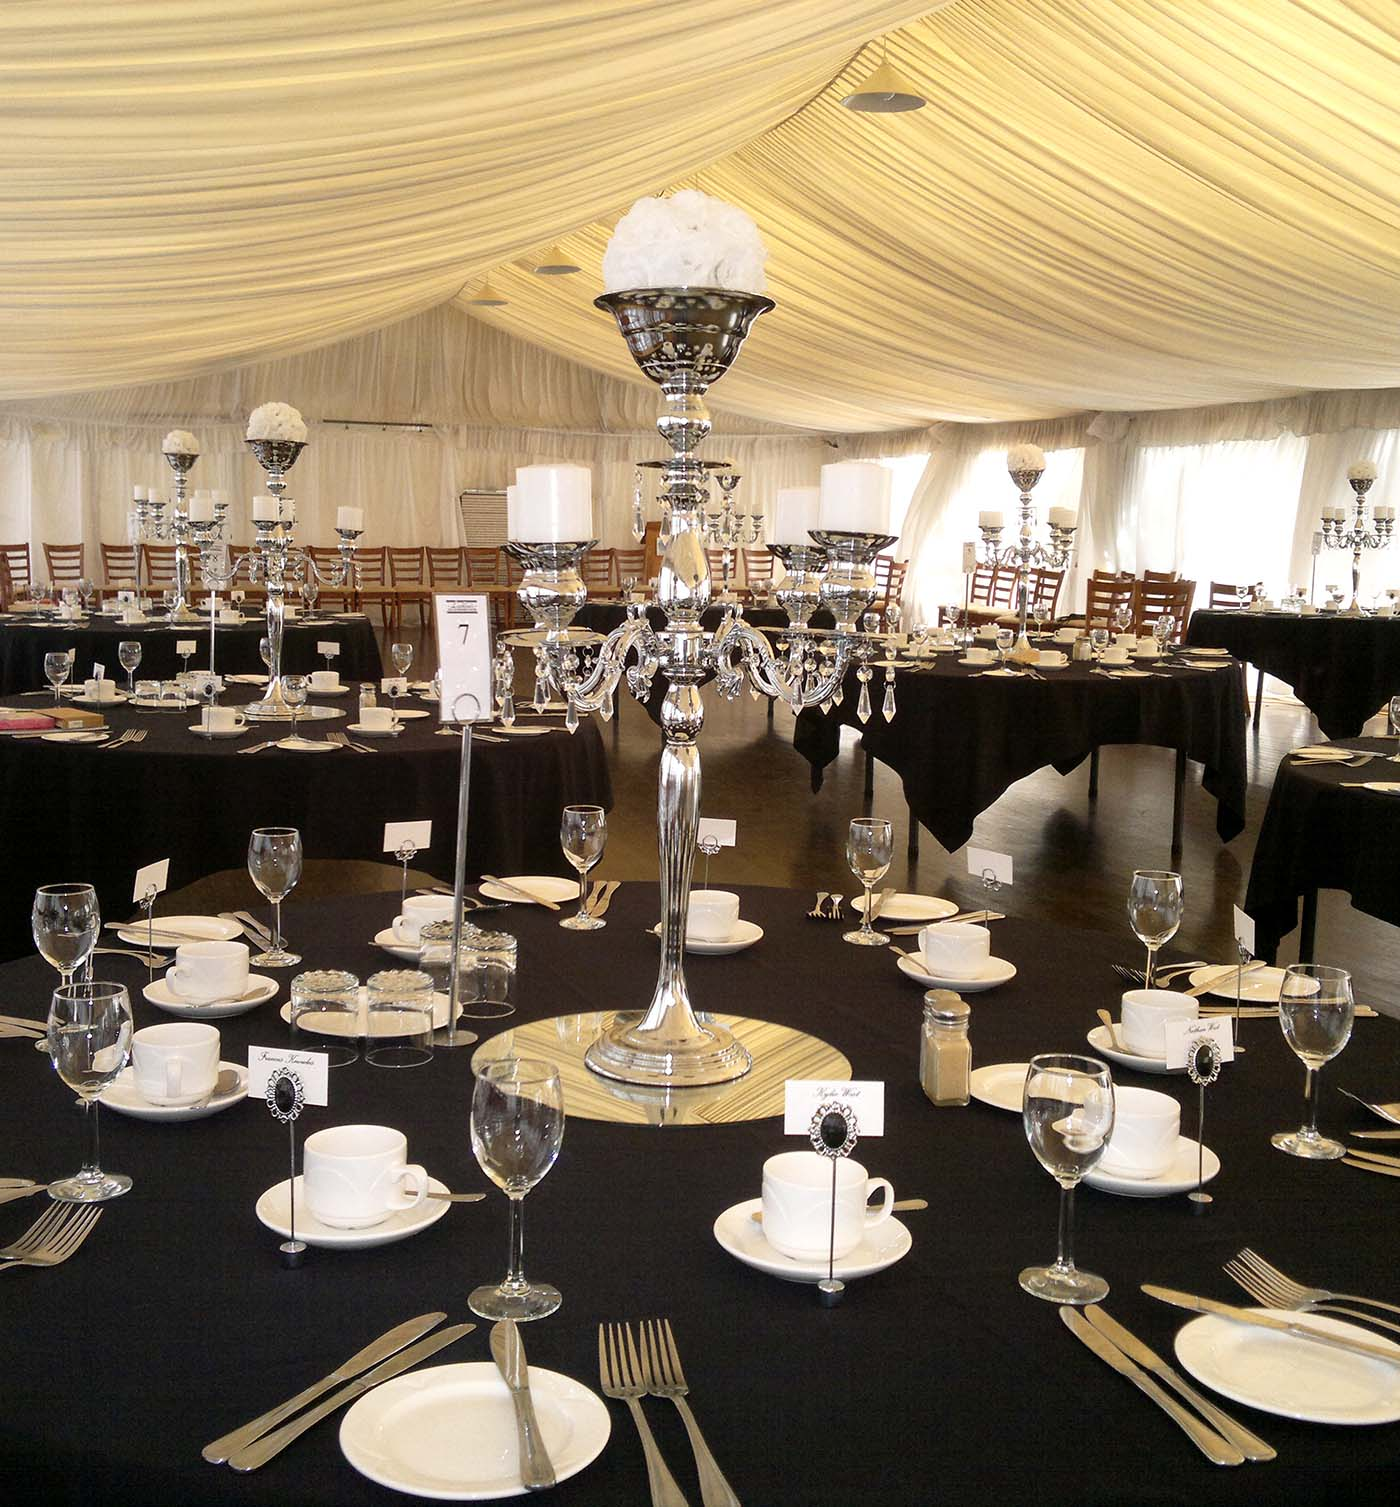 Chrome 5 arm Candelabra at Lachlans Old Government House Parramatta Park, Marquee